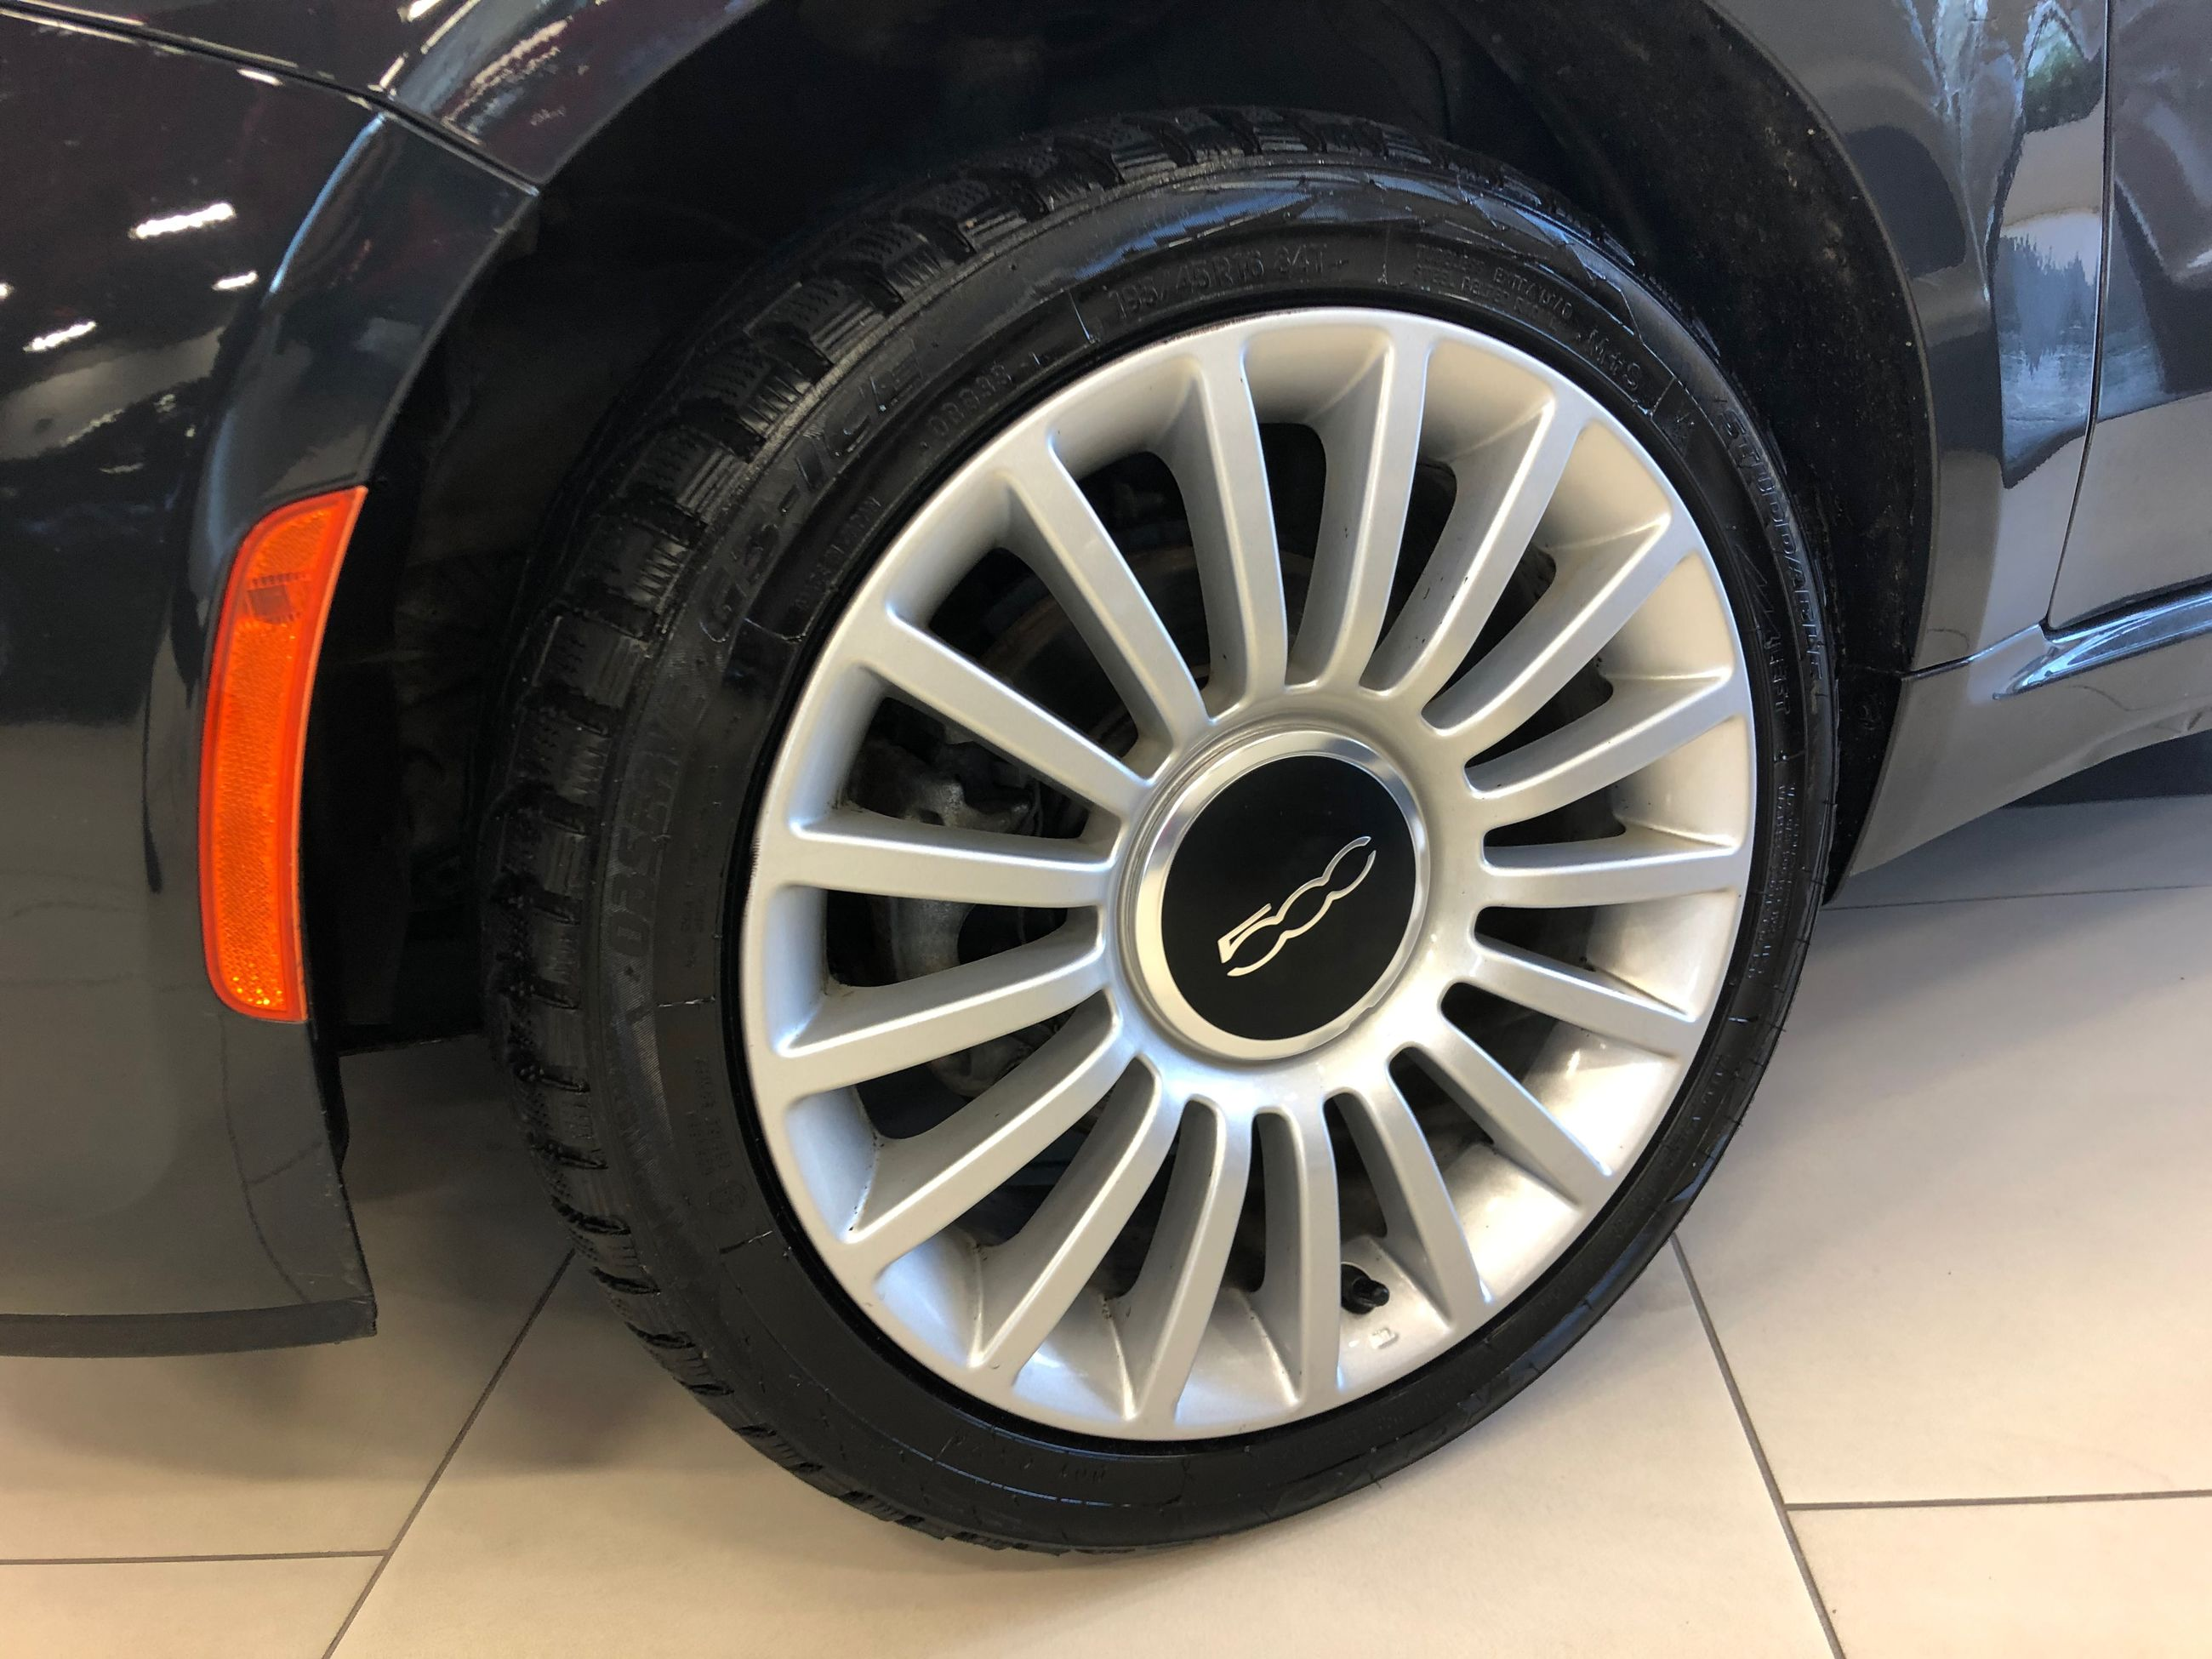 2017 Fiat 500 complet